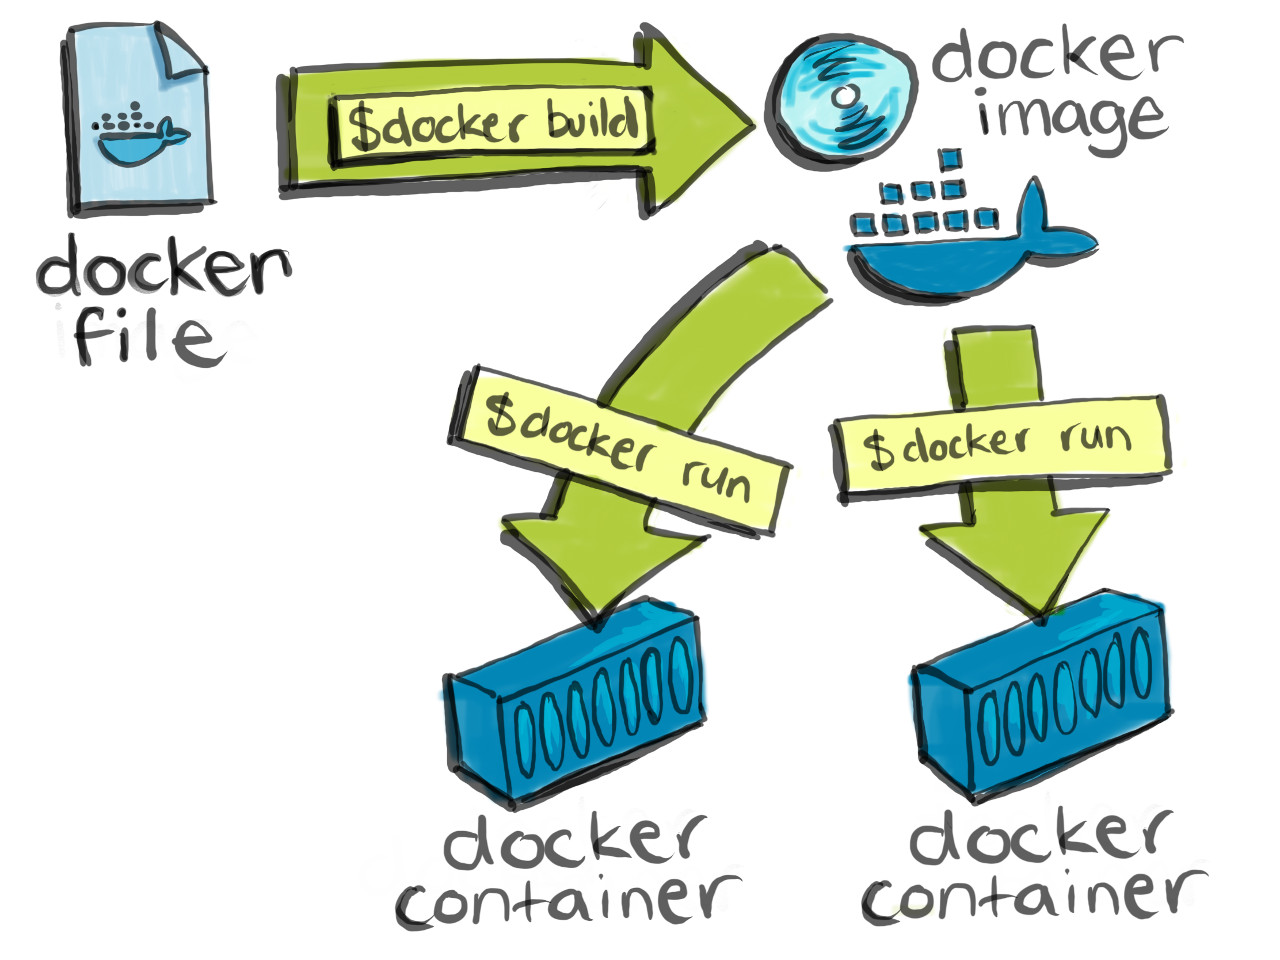 Getting started with Docker - images and containers